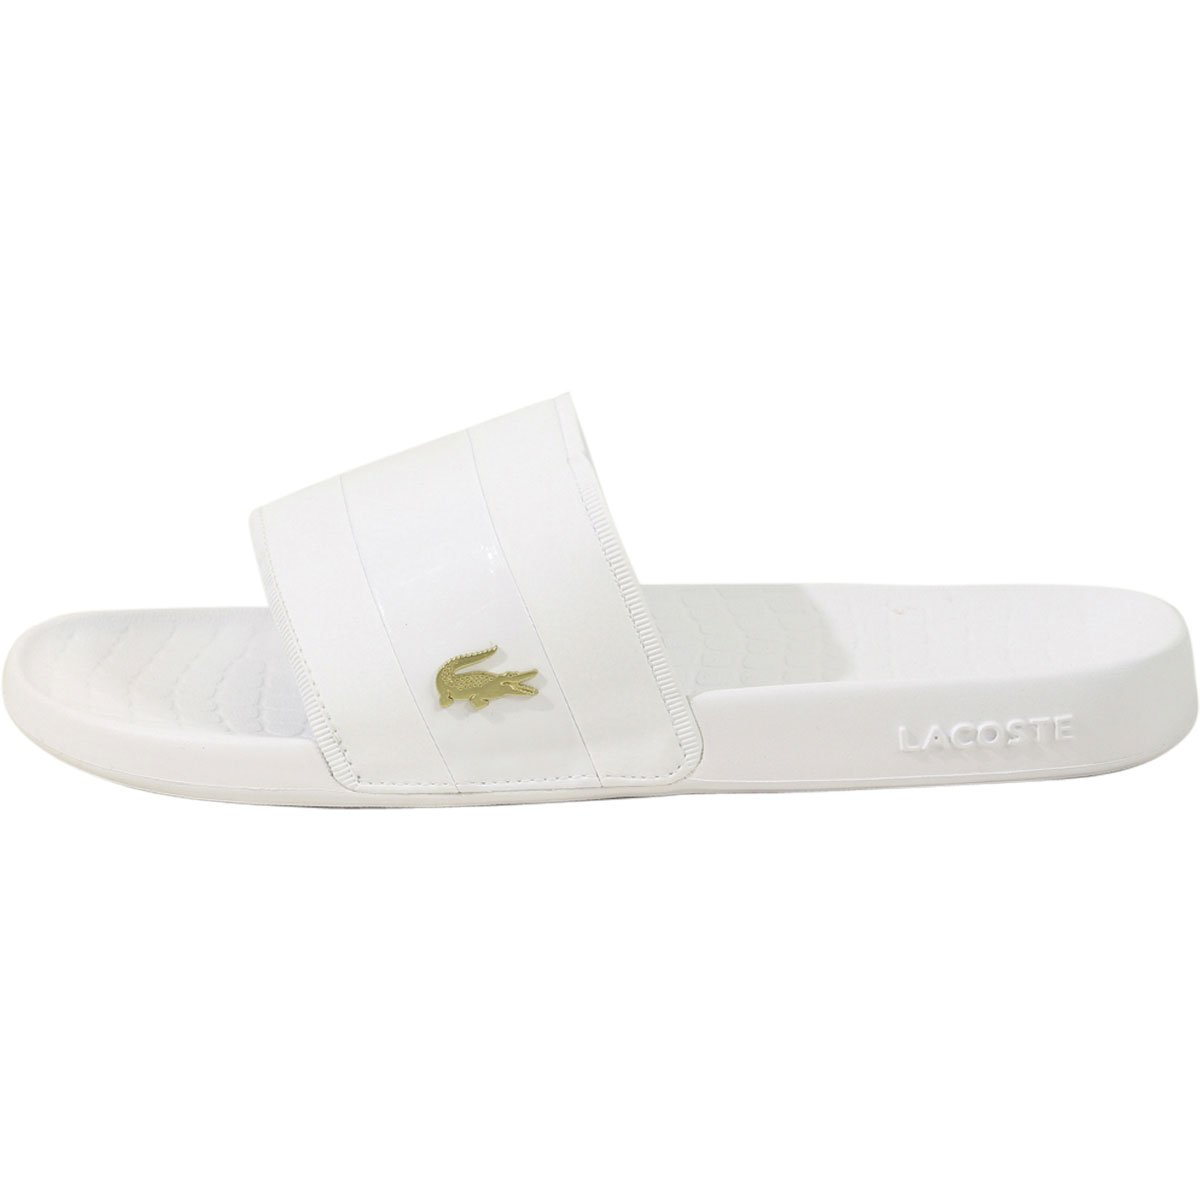 fc2cfb88cd6bb Lacoste Fraisier Sandals Men s Shoes Size  Buy Online at Low Prices in  India - Amazon.in